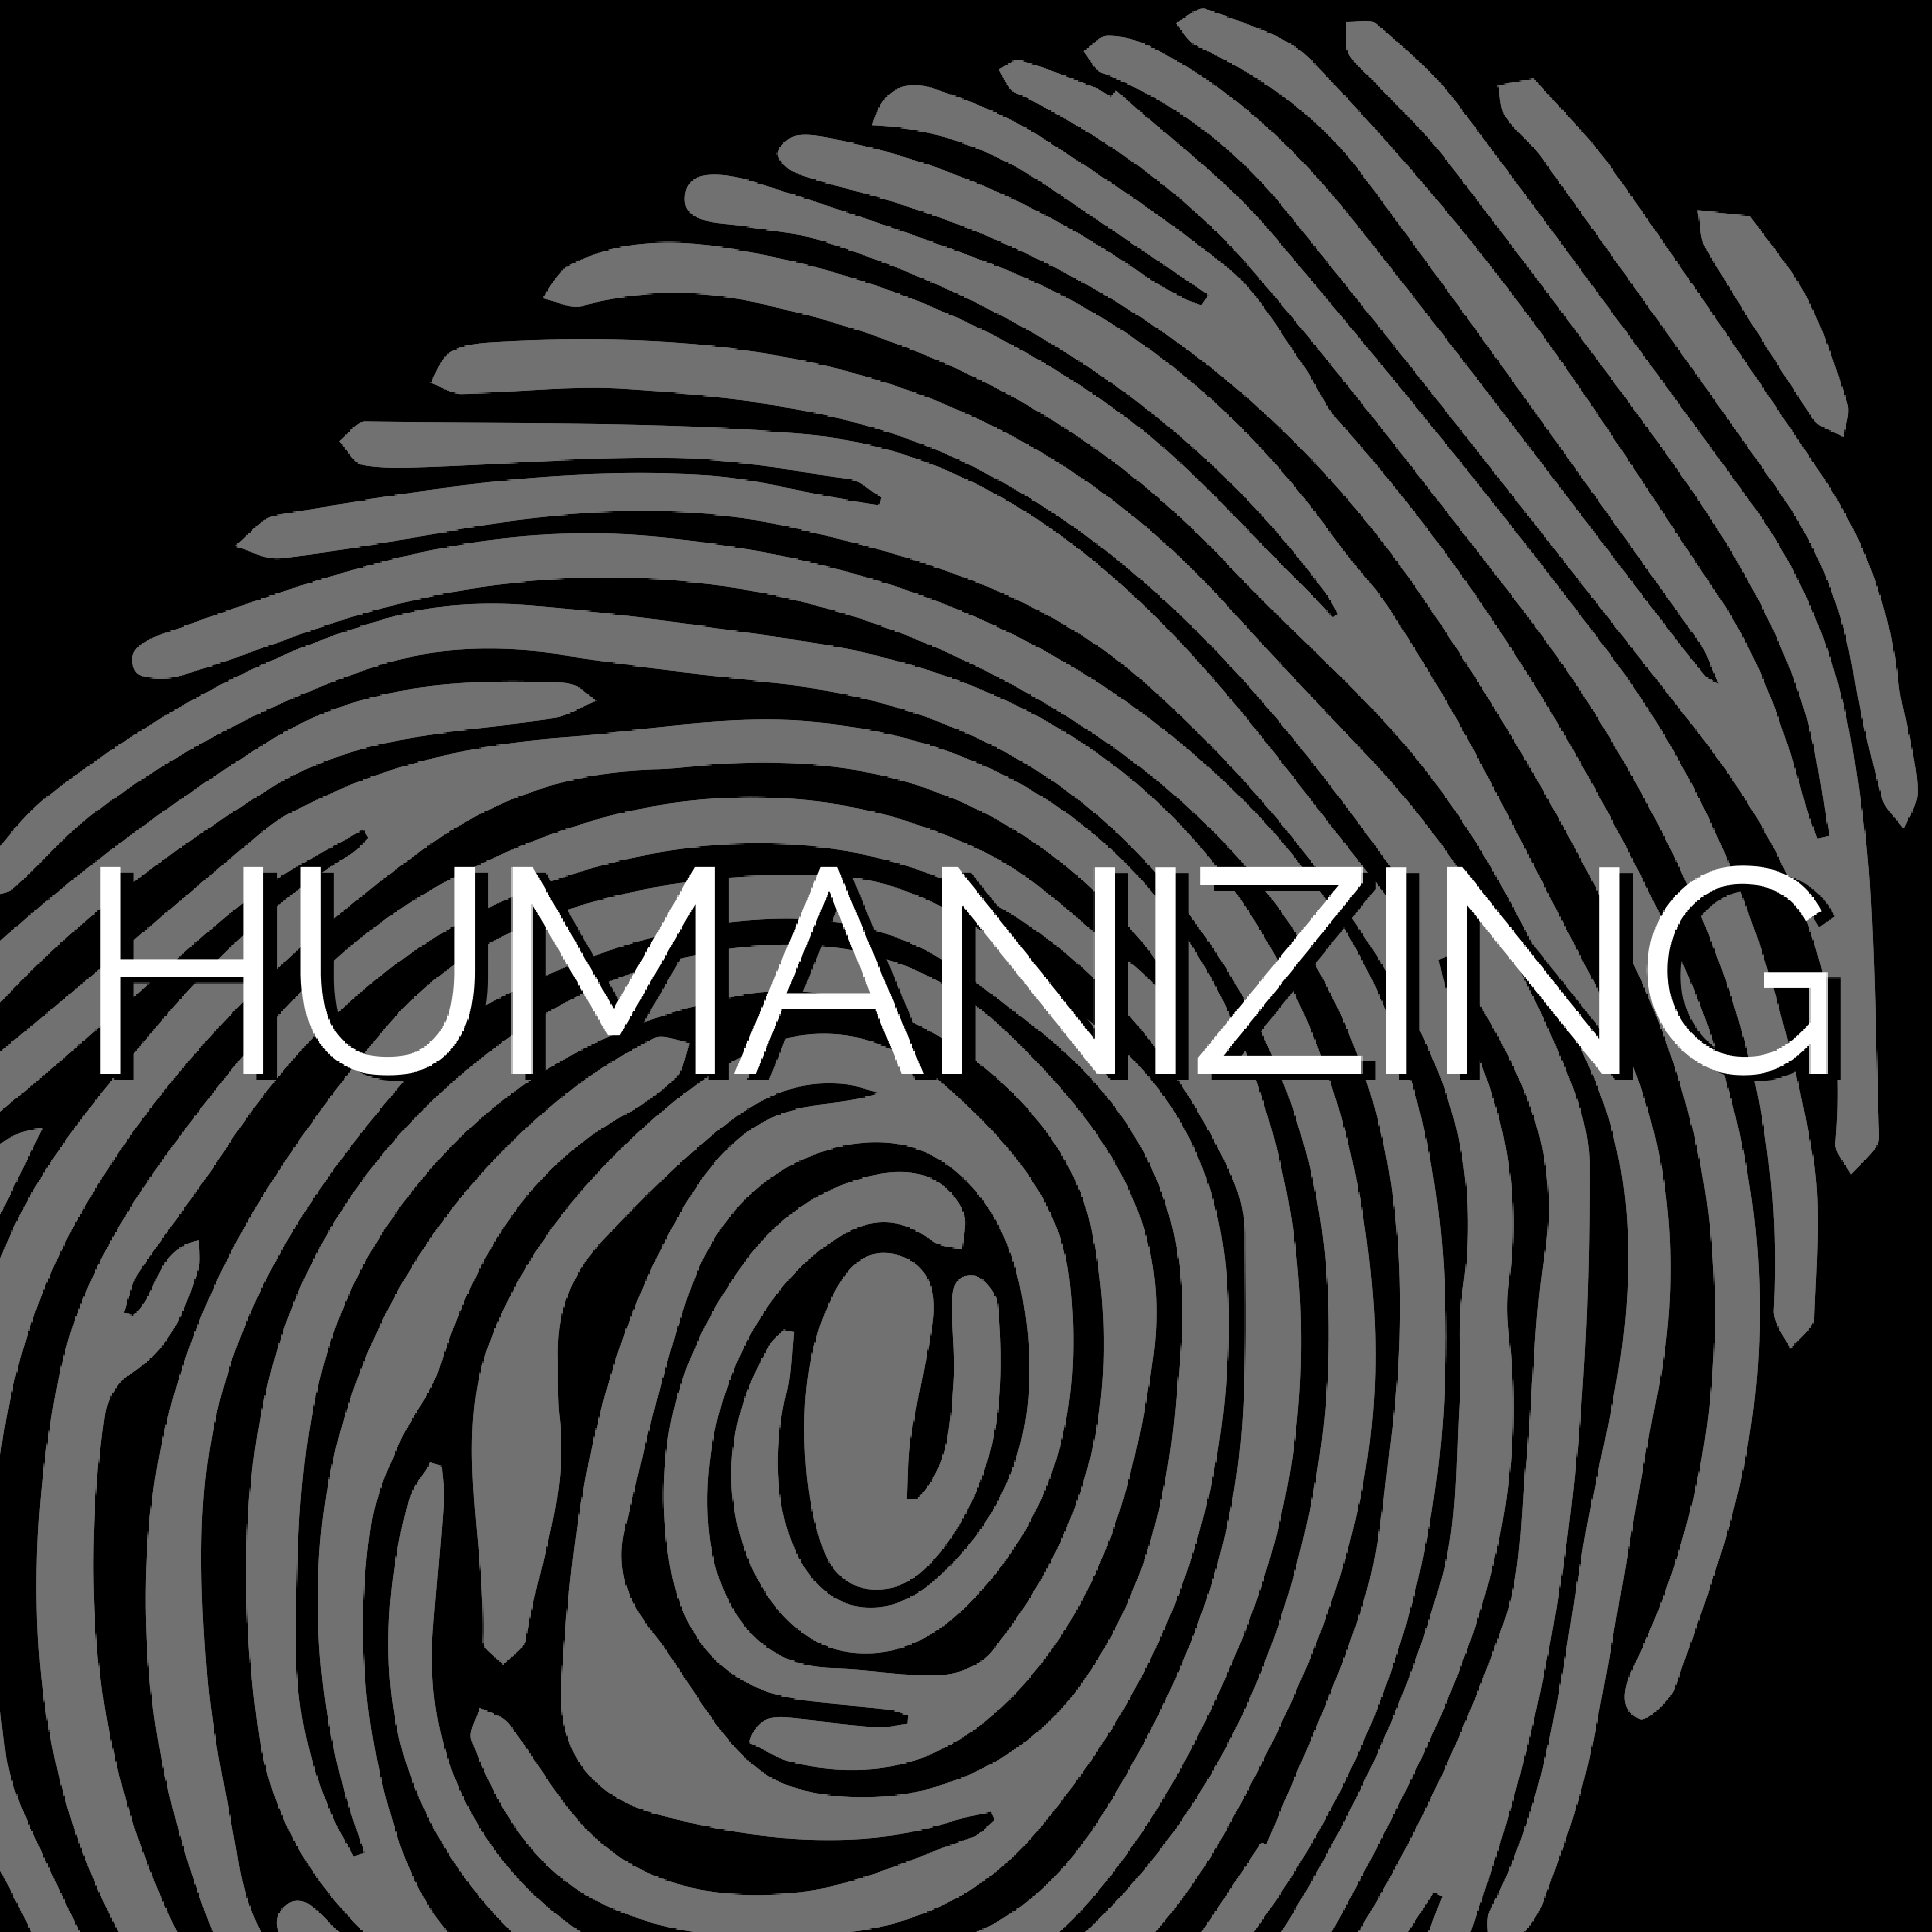 link to humanizing page